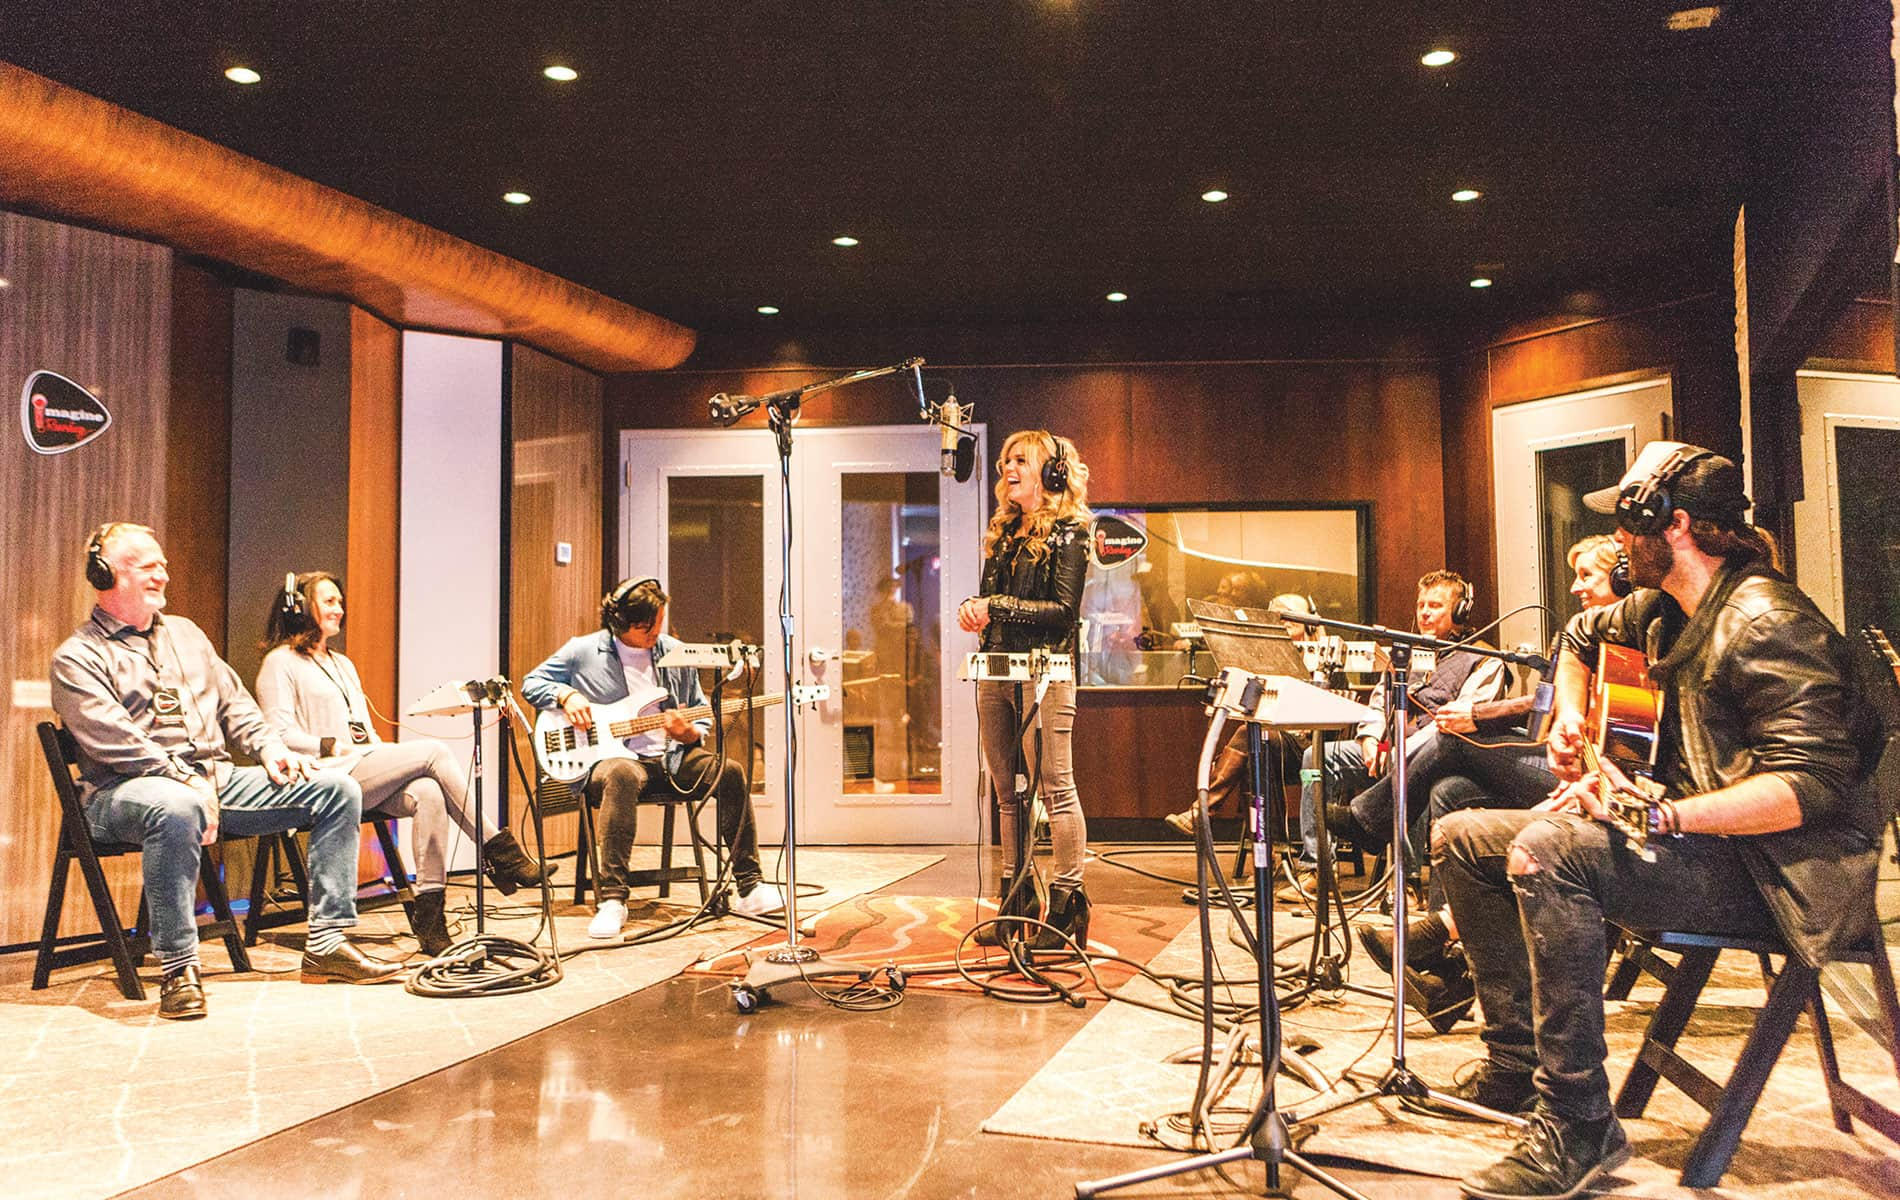 Recording artist Natalie Stovall sings a new song during a live Imagine Recordings session with studio musicians while attendees listen through headphones.